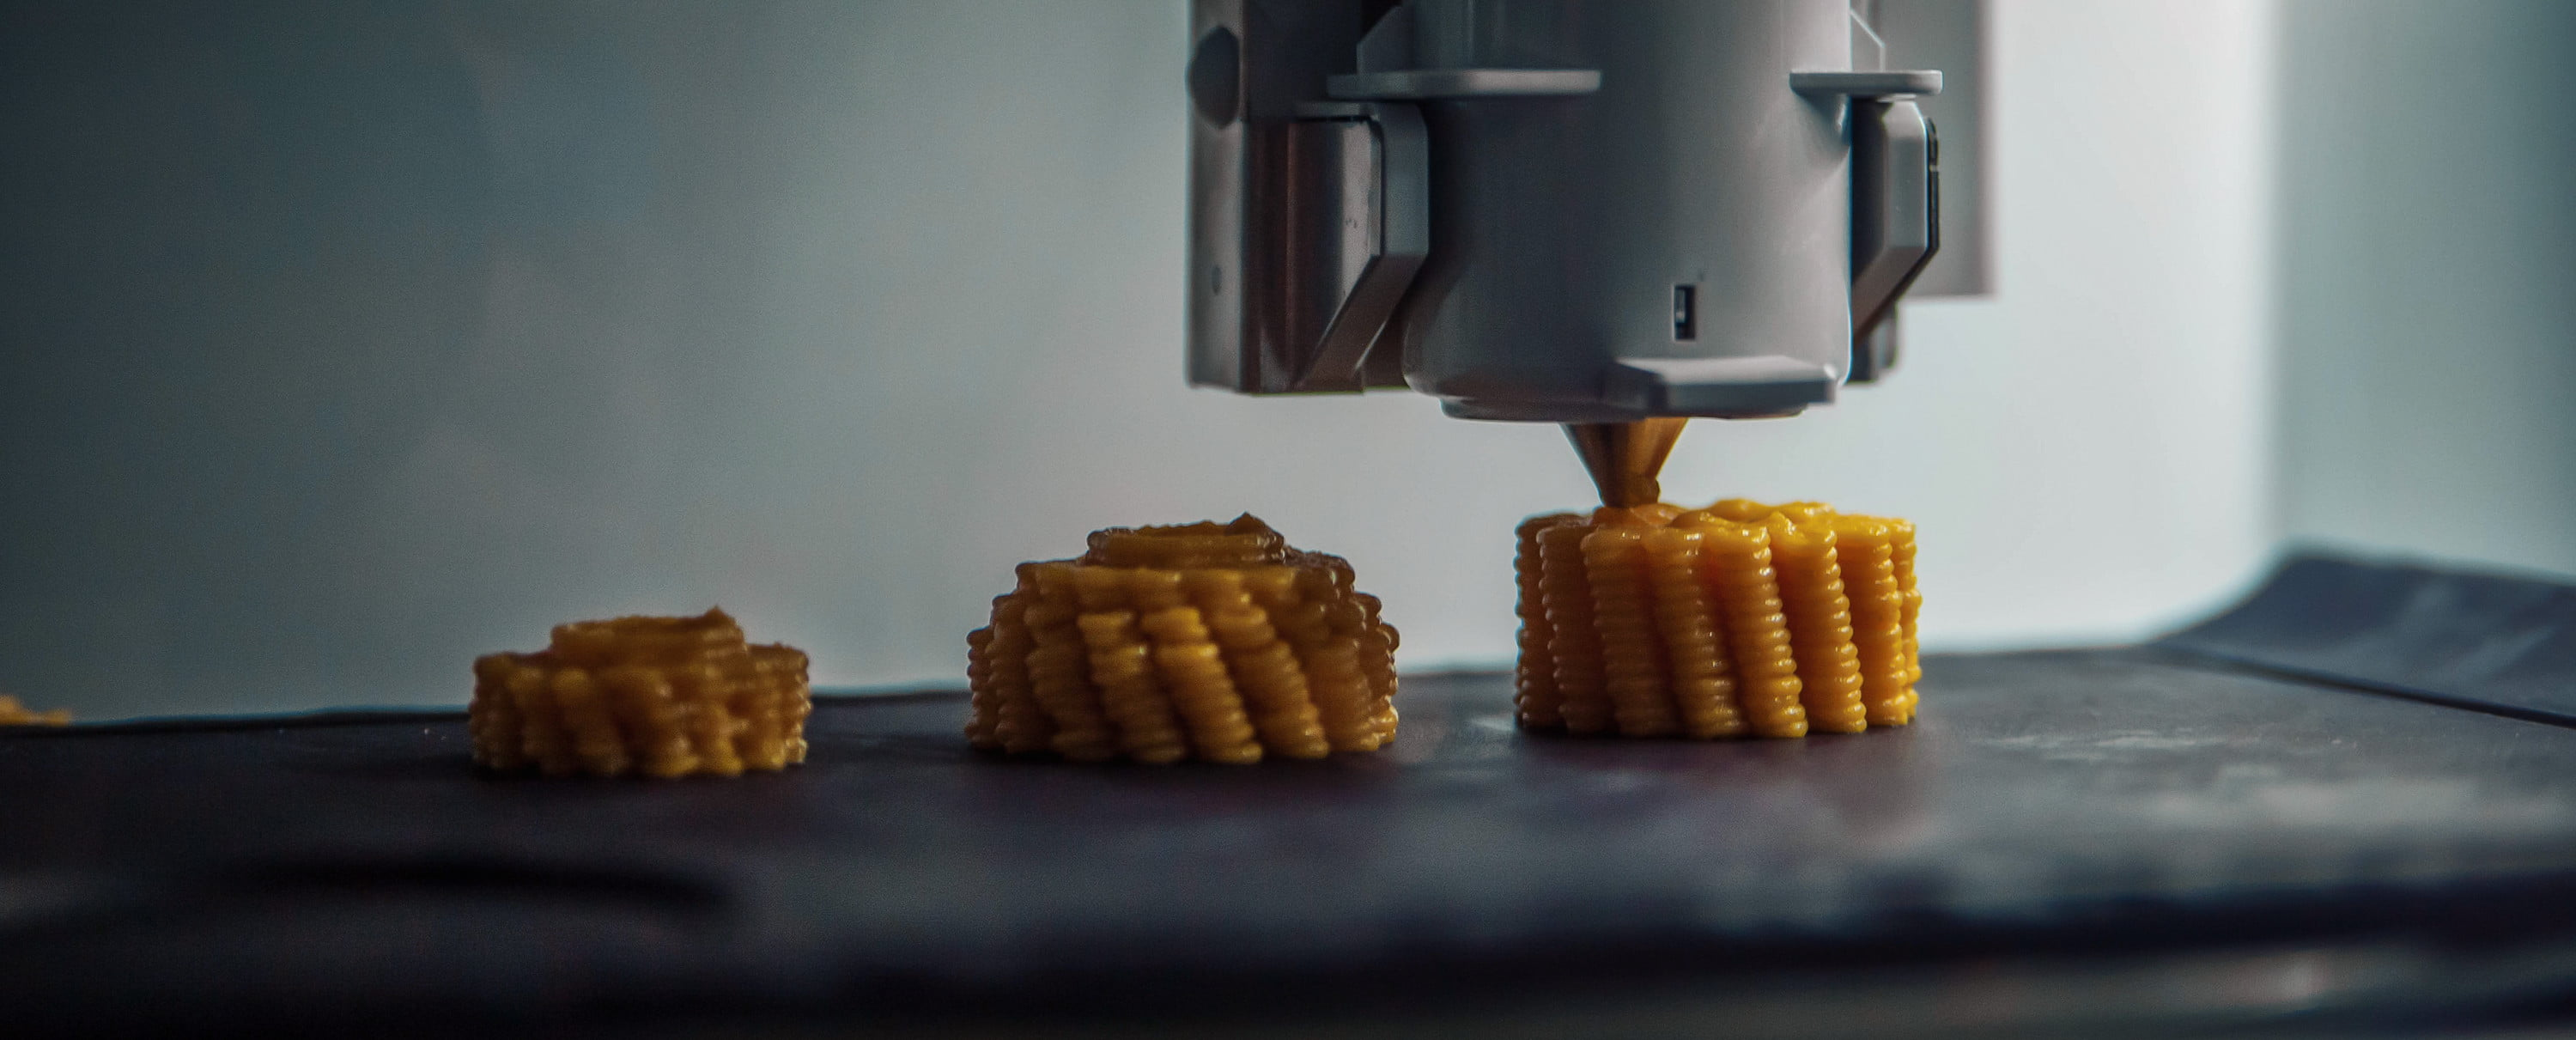 D Food Printers How They Could Change What You Eat Digital Trends - 3d printed edible food grows eat